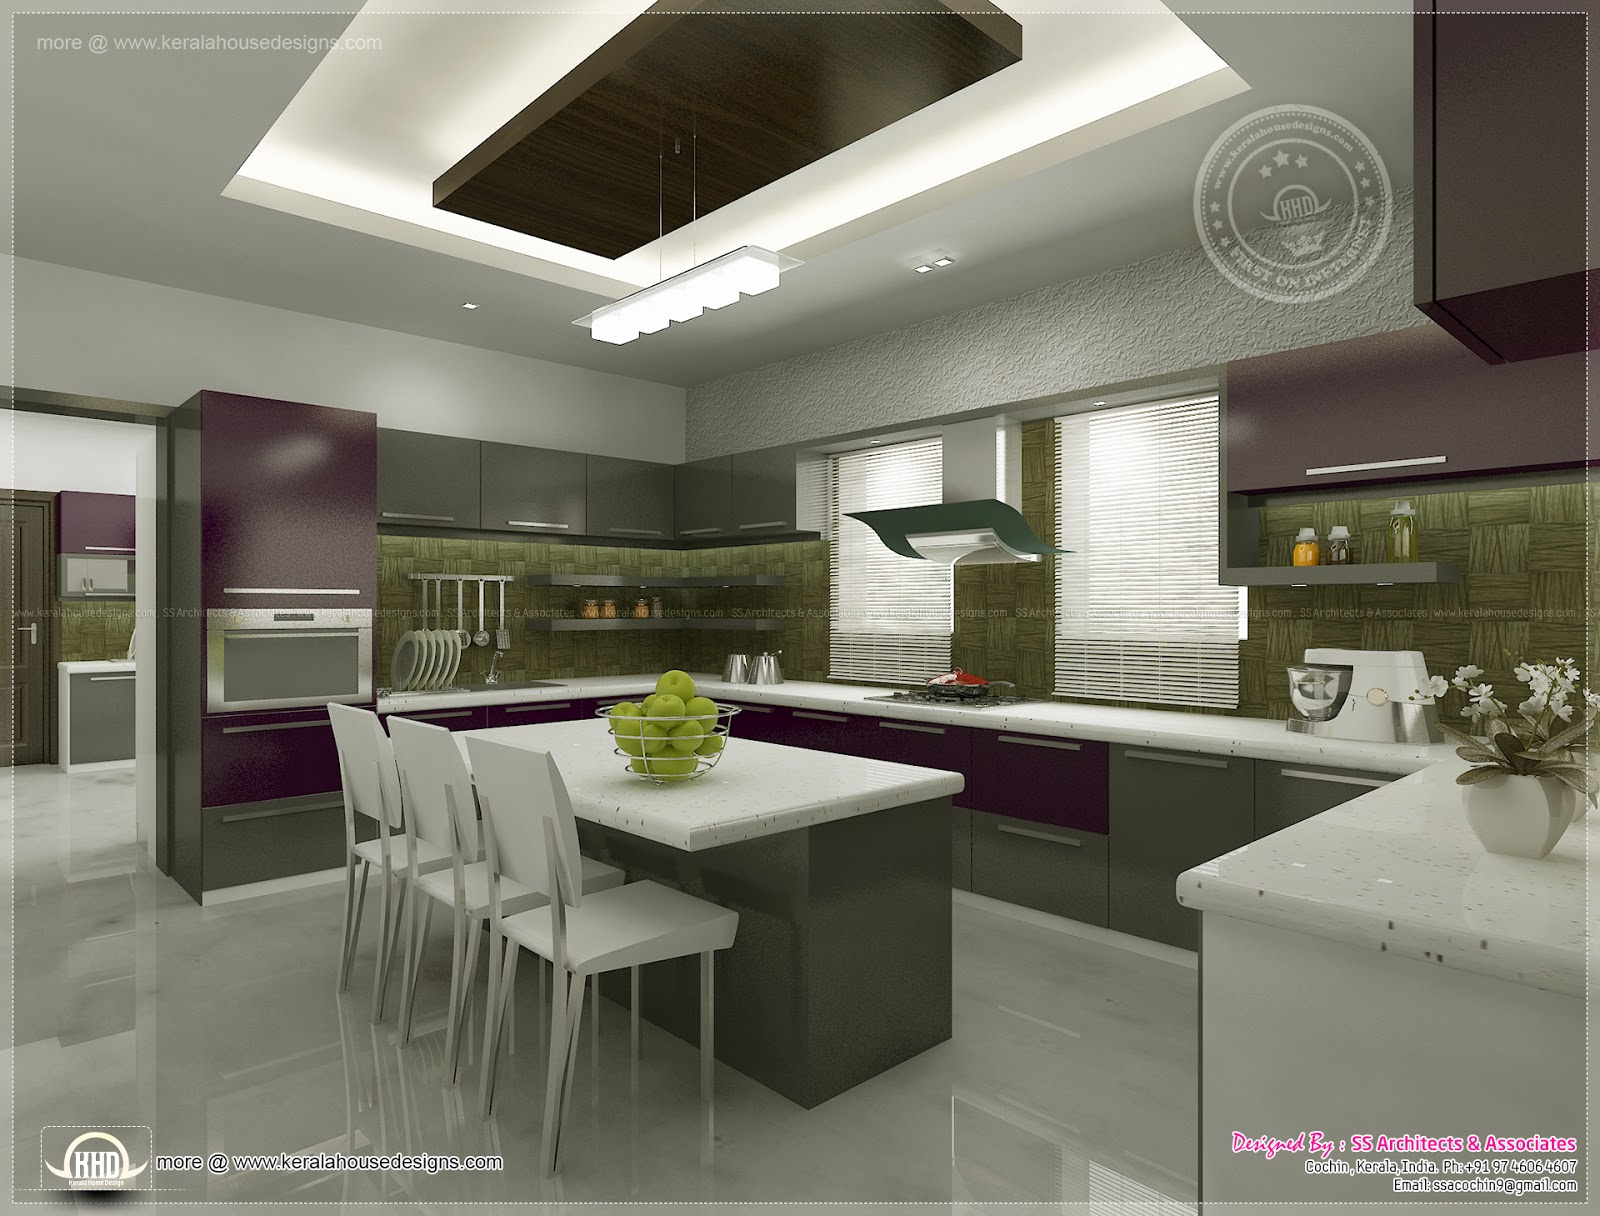 Interior Design Kitchen Sherwin Williams Cabinet Paint Views By Ss Architects Cochin Kerala